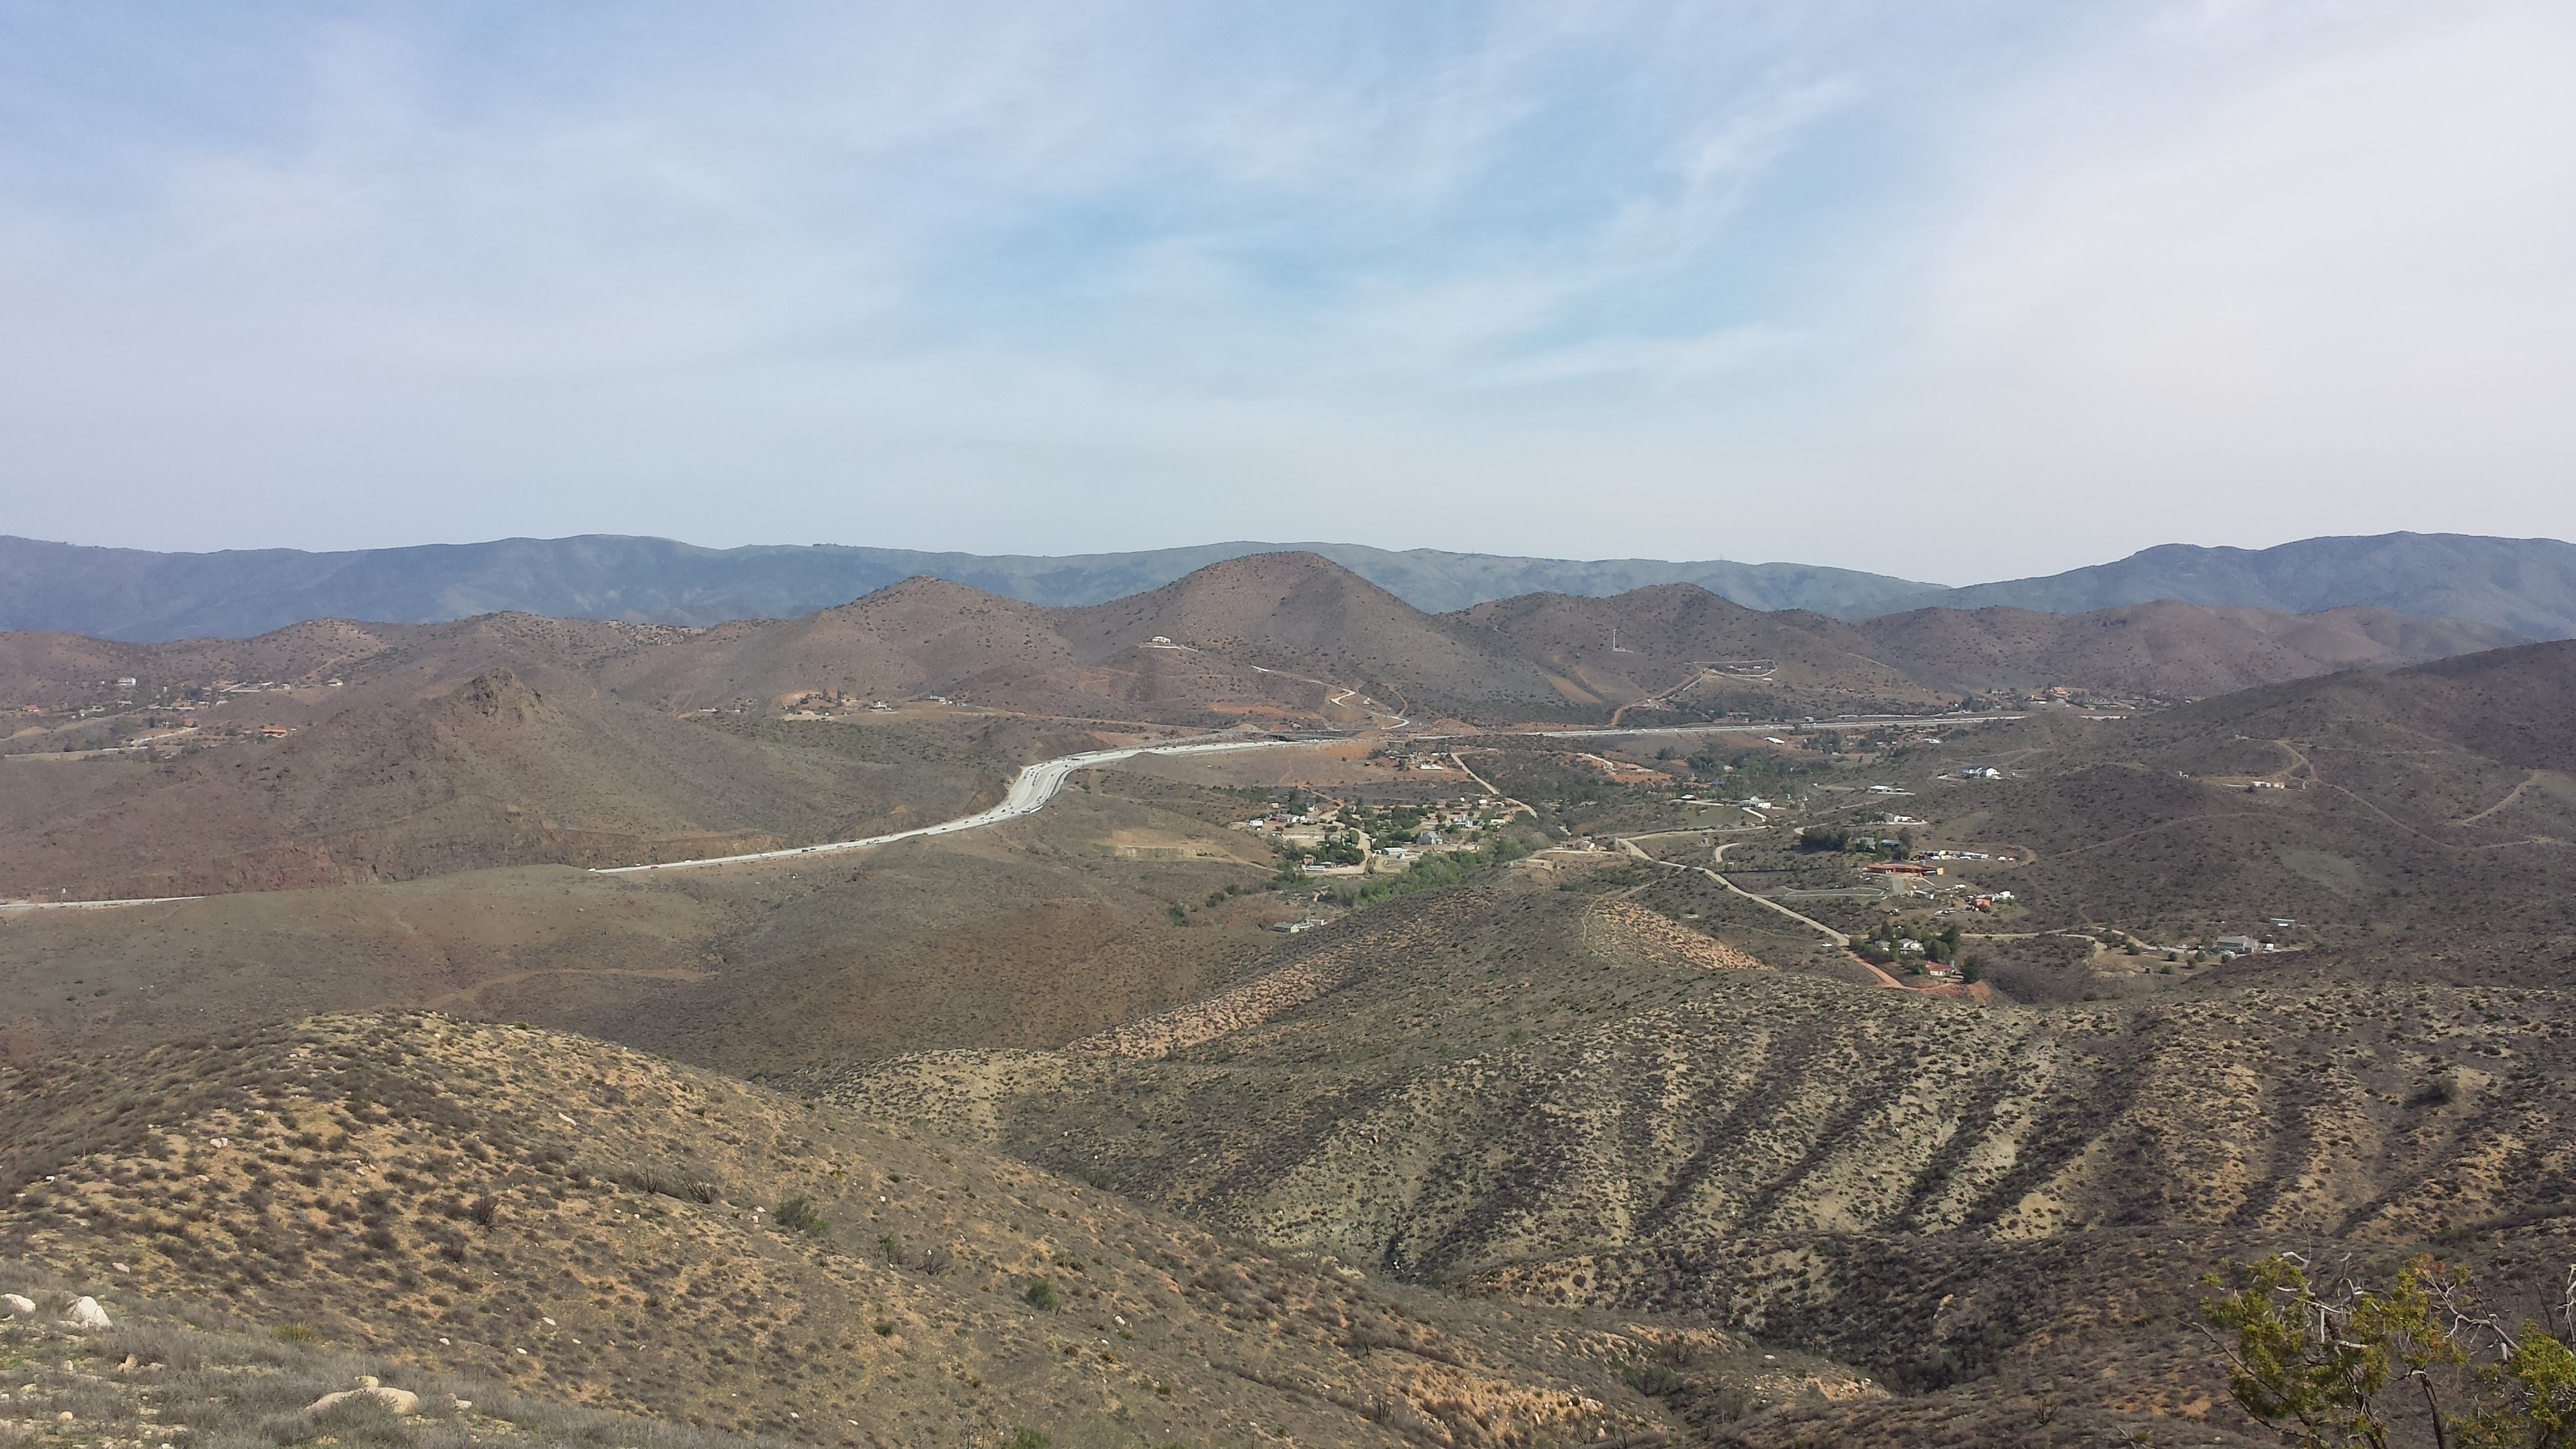 View of Hwy 14 near Agua Dulce